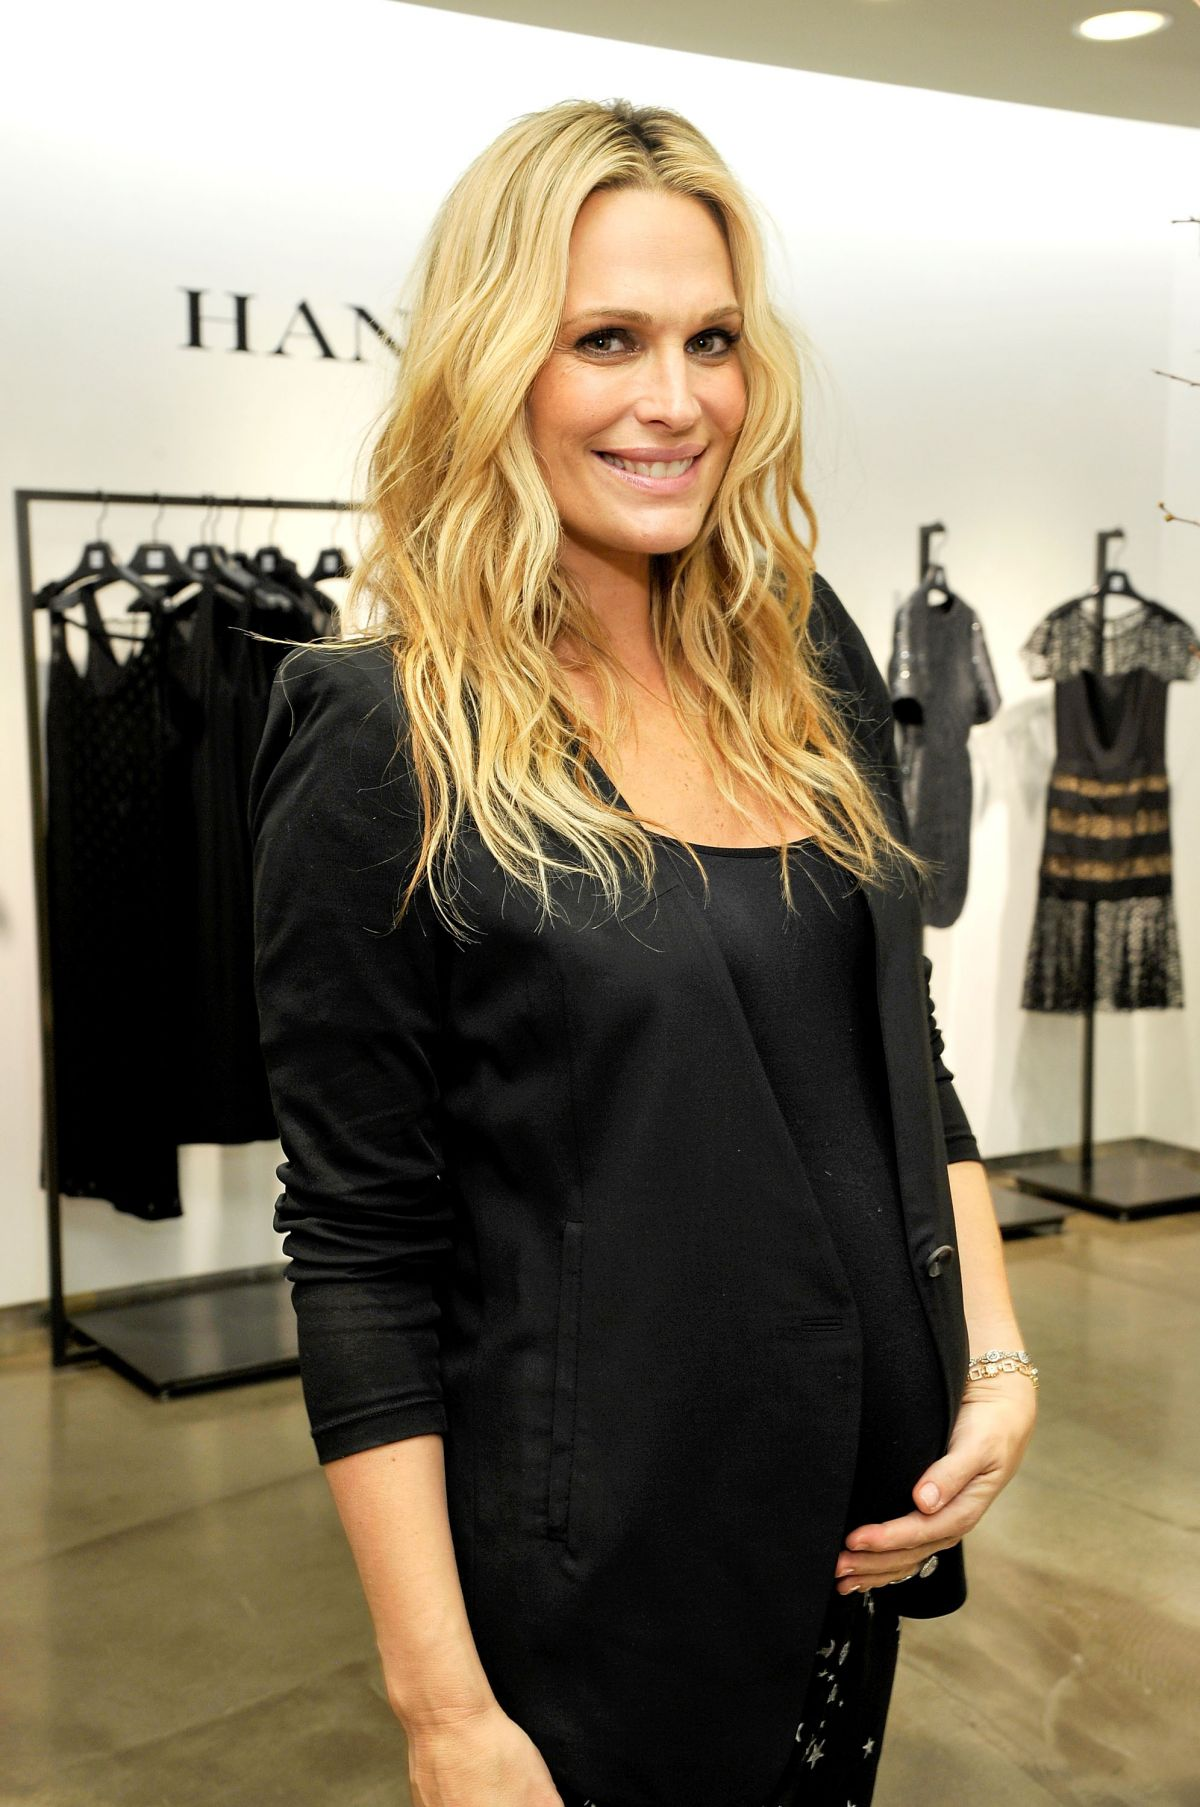 MOLLY SIMS at Mary Alice Haney Private Event in Beverly Hills